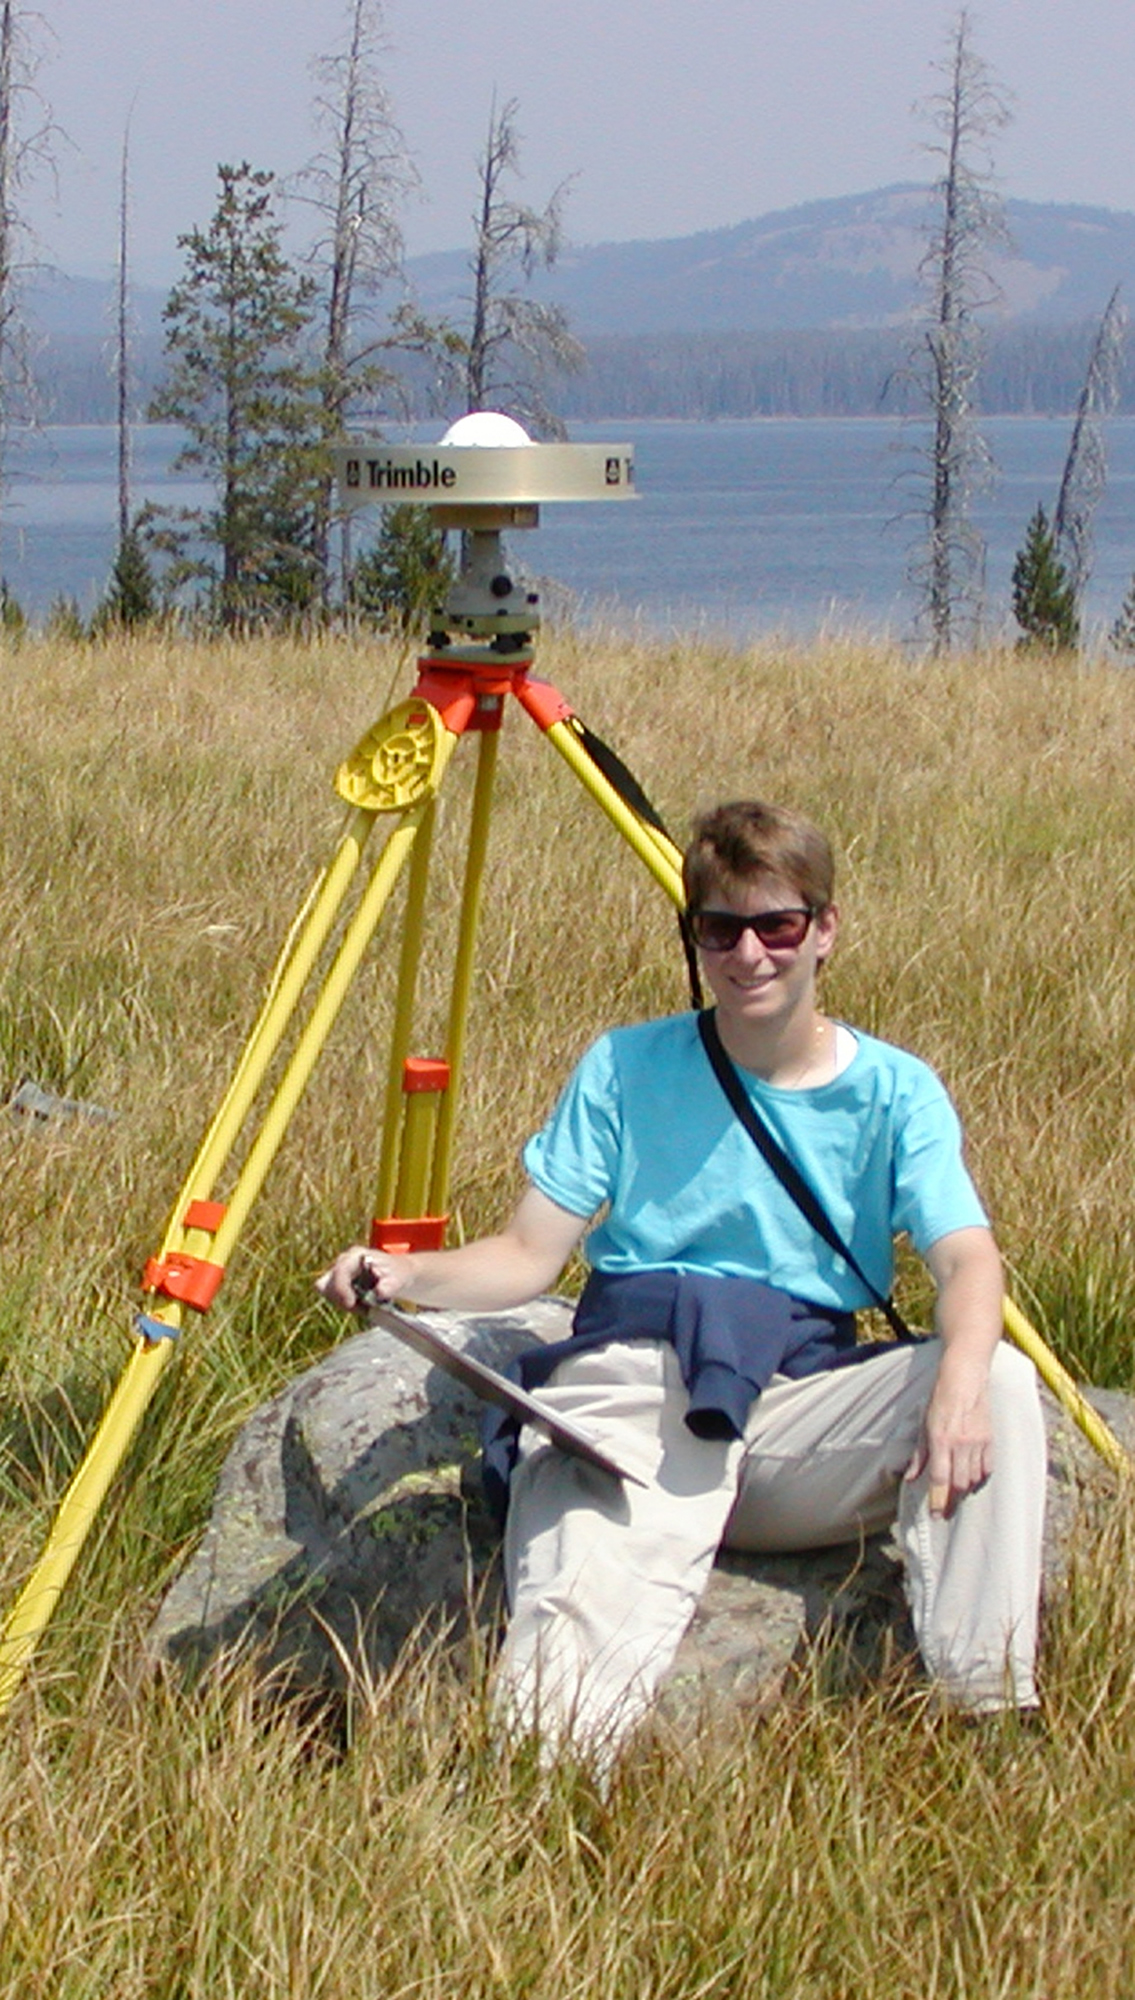 Christine Puskas, a University of Utah doctoral student in geophysics, sits by a portable Global Positioning System (GPS) antenna near the shore of Yellowstone Lake in Wyoming. Puskas, Utah geophysicist Robert B. Smith and others have published a study based on 17 years of GPS measurements showing how Earth's crust in a large region of the West is deformed by the Yellowstone hotspot, a giant plume of hot and molten rock that powers Yellowstone's hot springs and geysers, generates earthquakes and occasionally produces catastrophic volcanic eruptions.